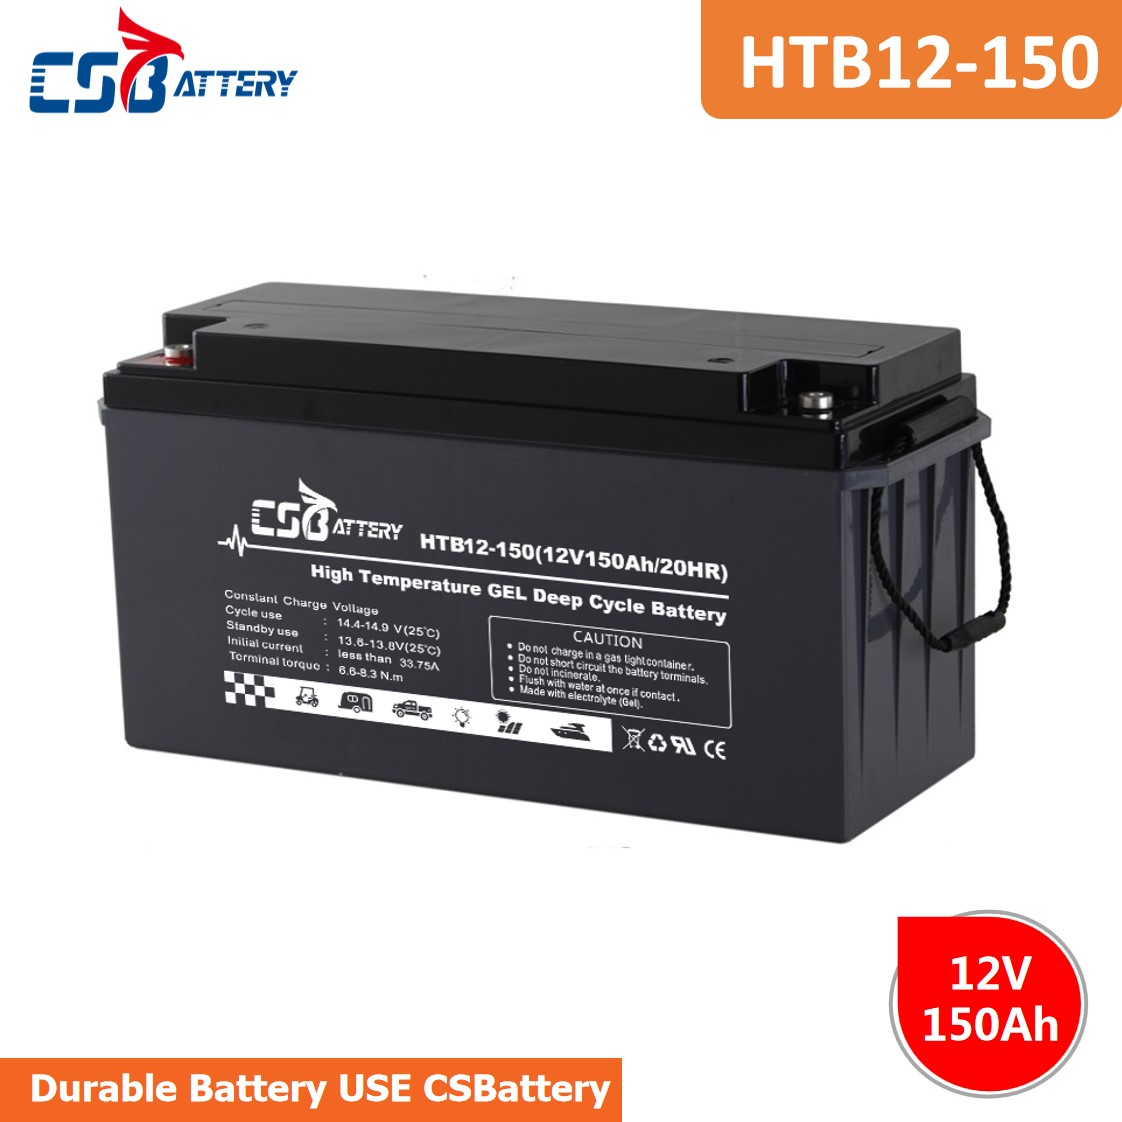 CSBattery 12V 150Ah strong starting performance GEL Battery for Electric-power/Emergency-systems/Booster-Pumps